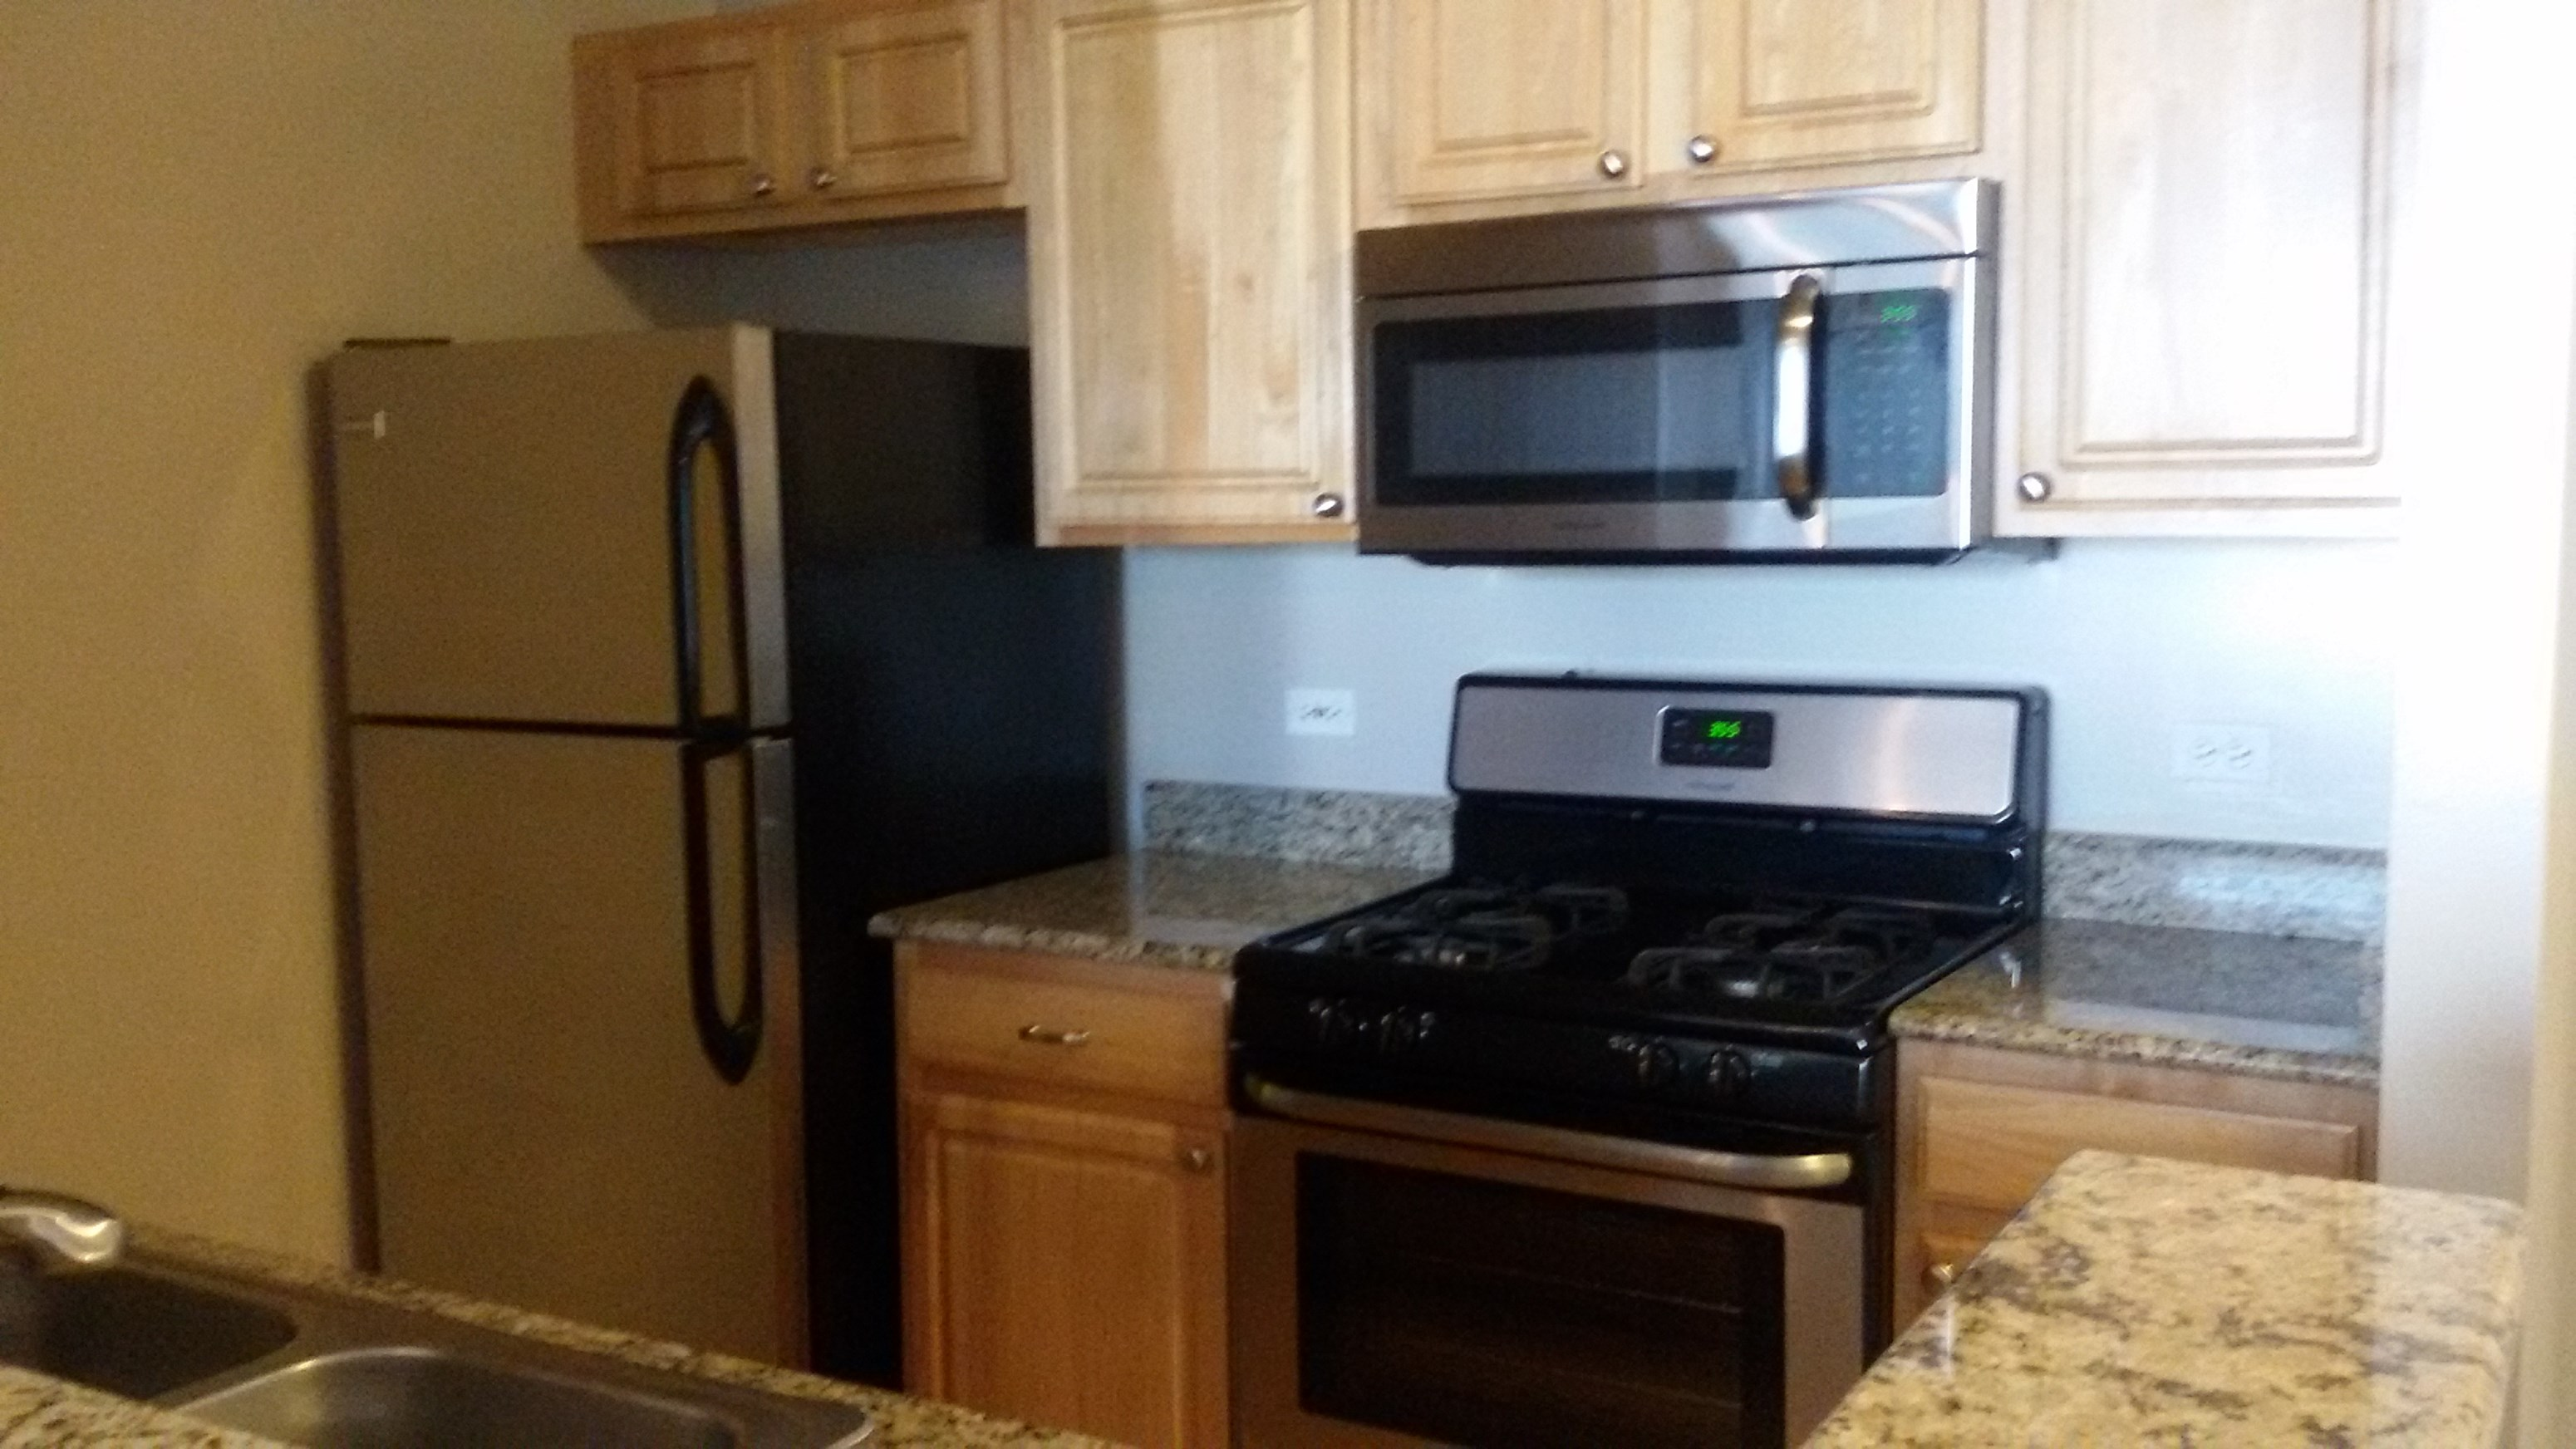 2 Bedroom Apartments Chicago Il Snsm155 Com